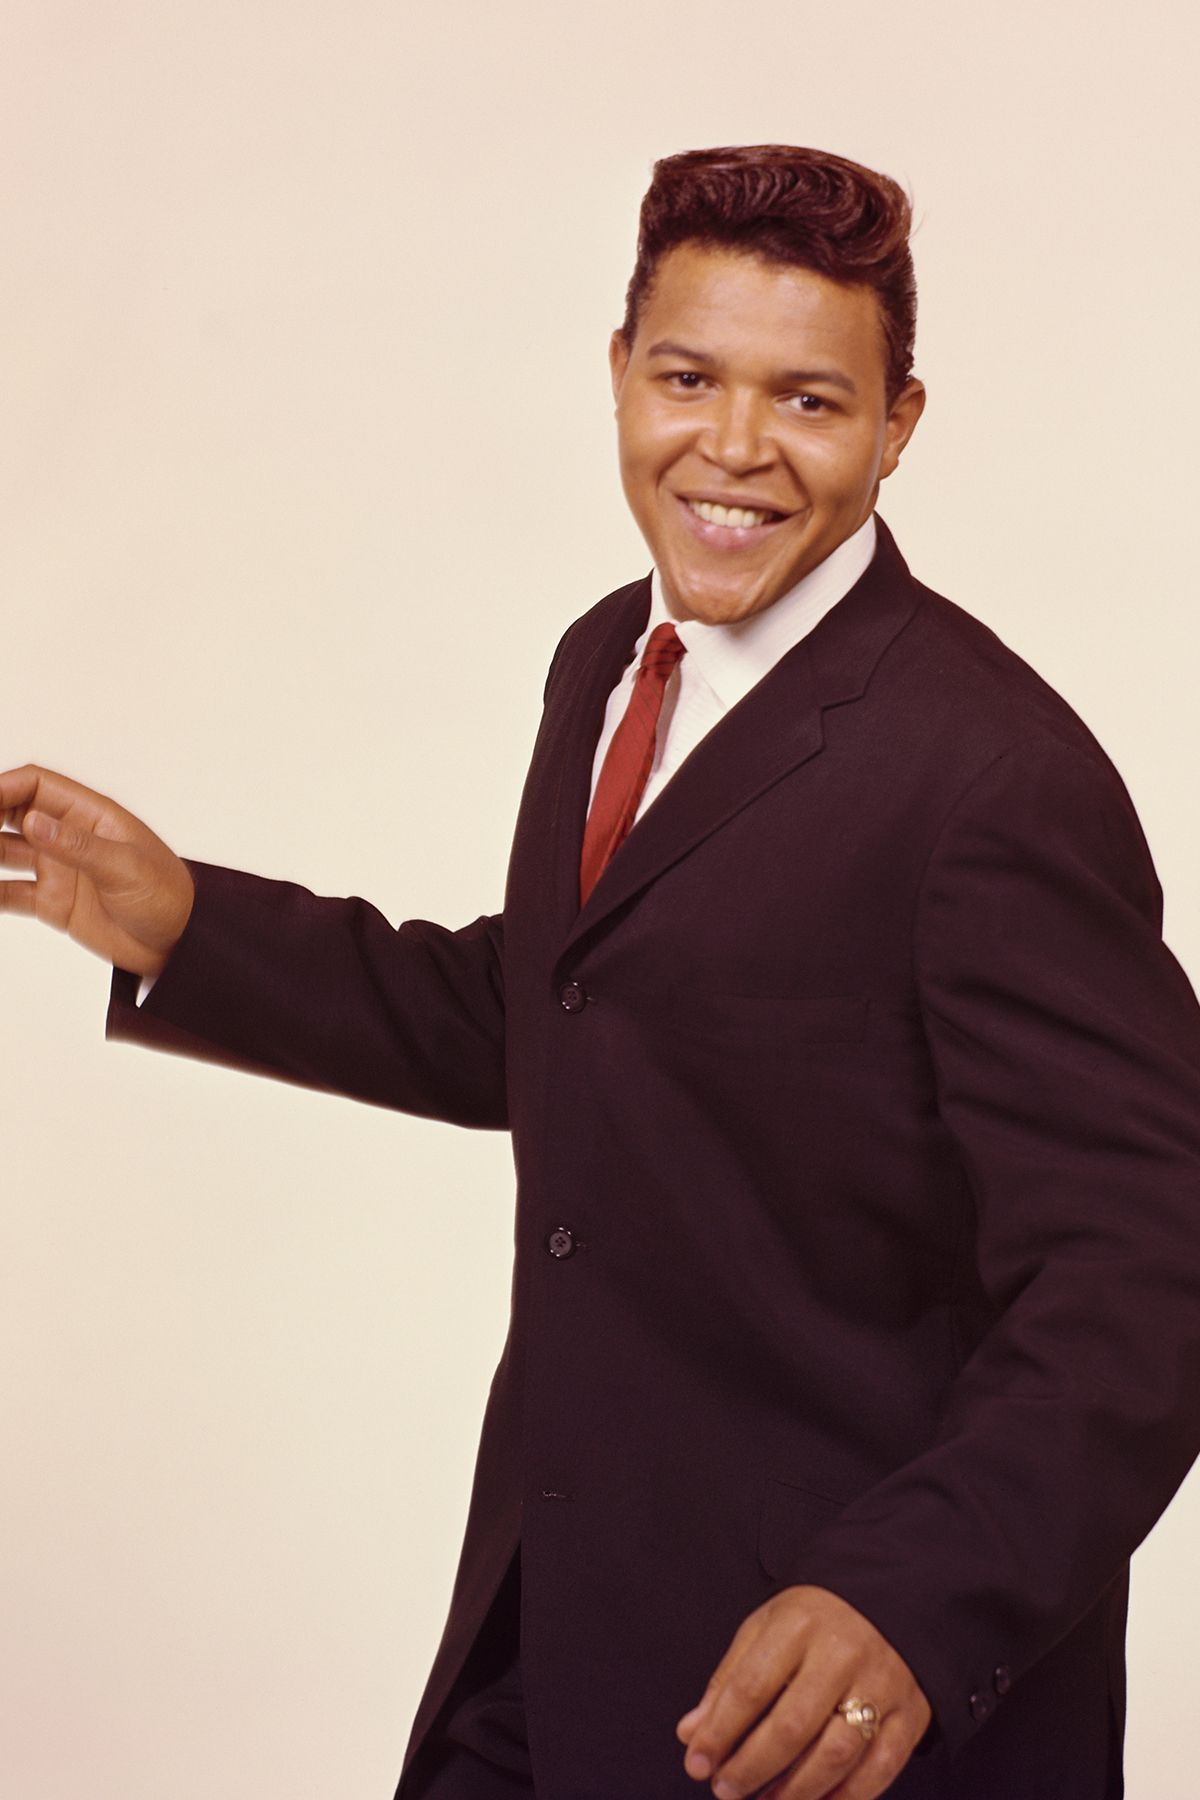 Chubby Checker - Most Popular Song the Year You Were Born